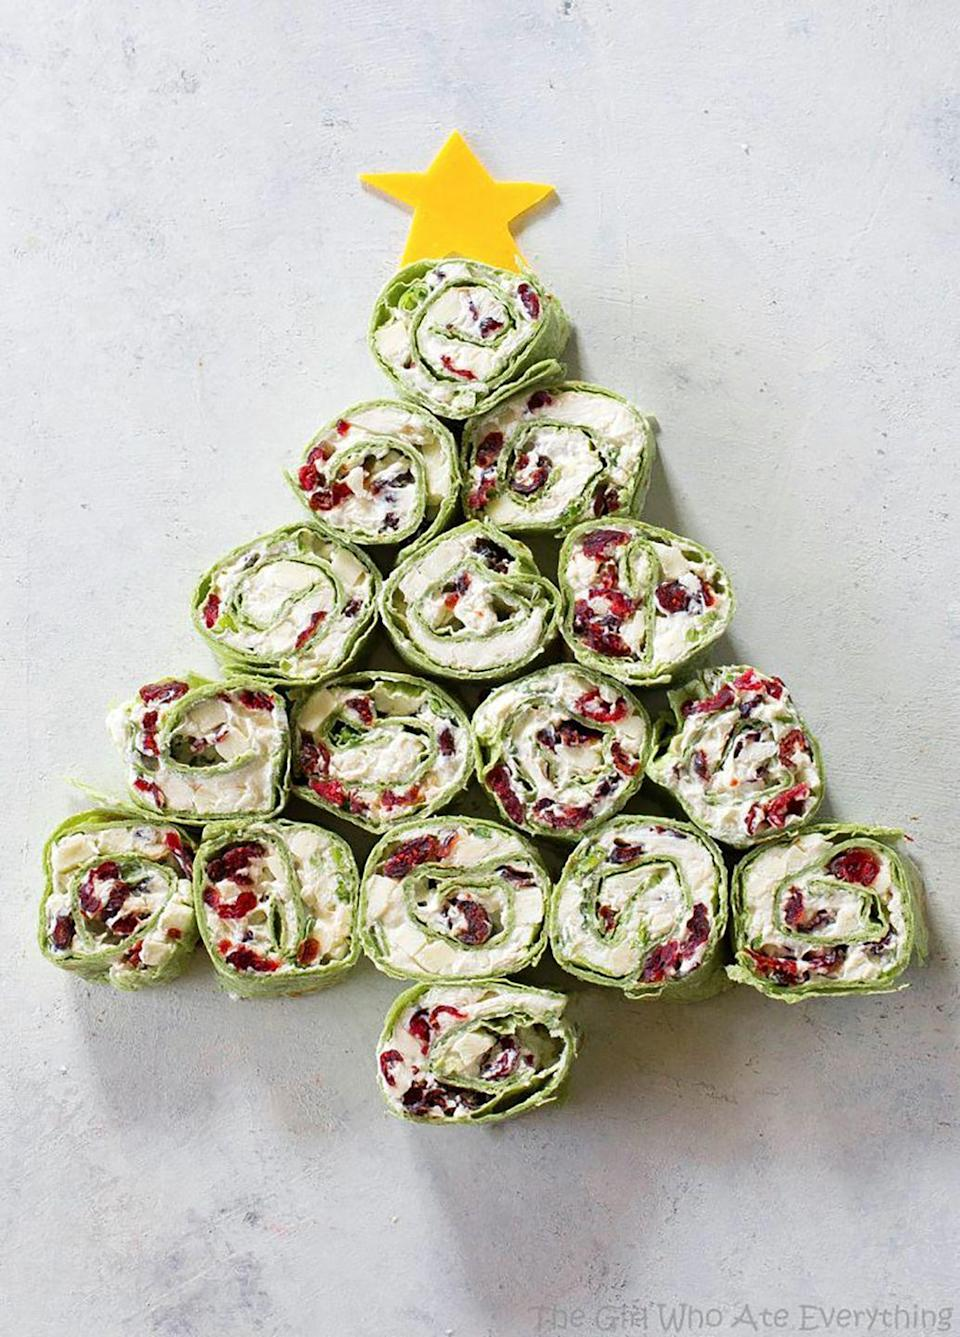 """<p>These easy pinwheels only require five ingredients. Bonus points if you display them in the shape of a tree!</p><p><strong>Get the recipe at <a href=""""http://www.the-girl-who-ate-everything.com/2015/11/cranberry-and-feta-pinwheels.html"""" rel=""""nofollow noopener"""" target=""""_blank"""" data-ylk=""""slk:The Girl Who Ate Everything"""" class=""""link rapid-noclick-resp"""">The Girl Who Ate Everything</a>.</strong></p>"""